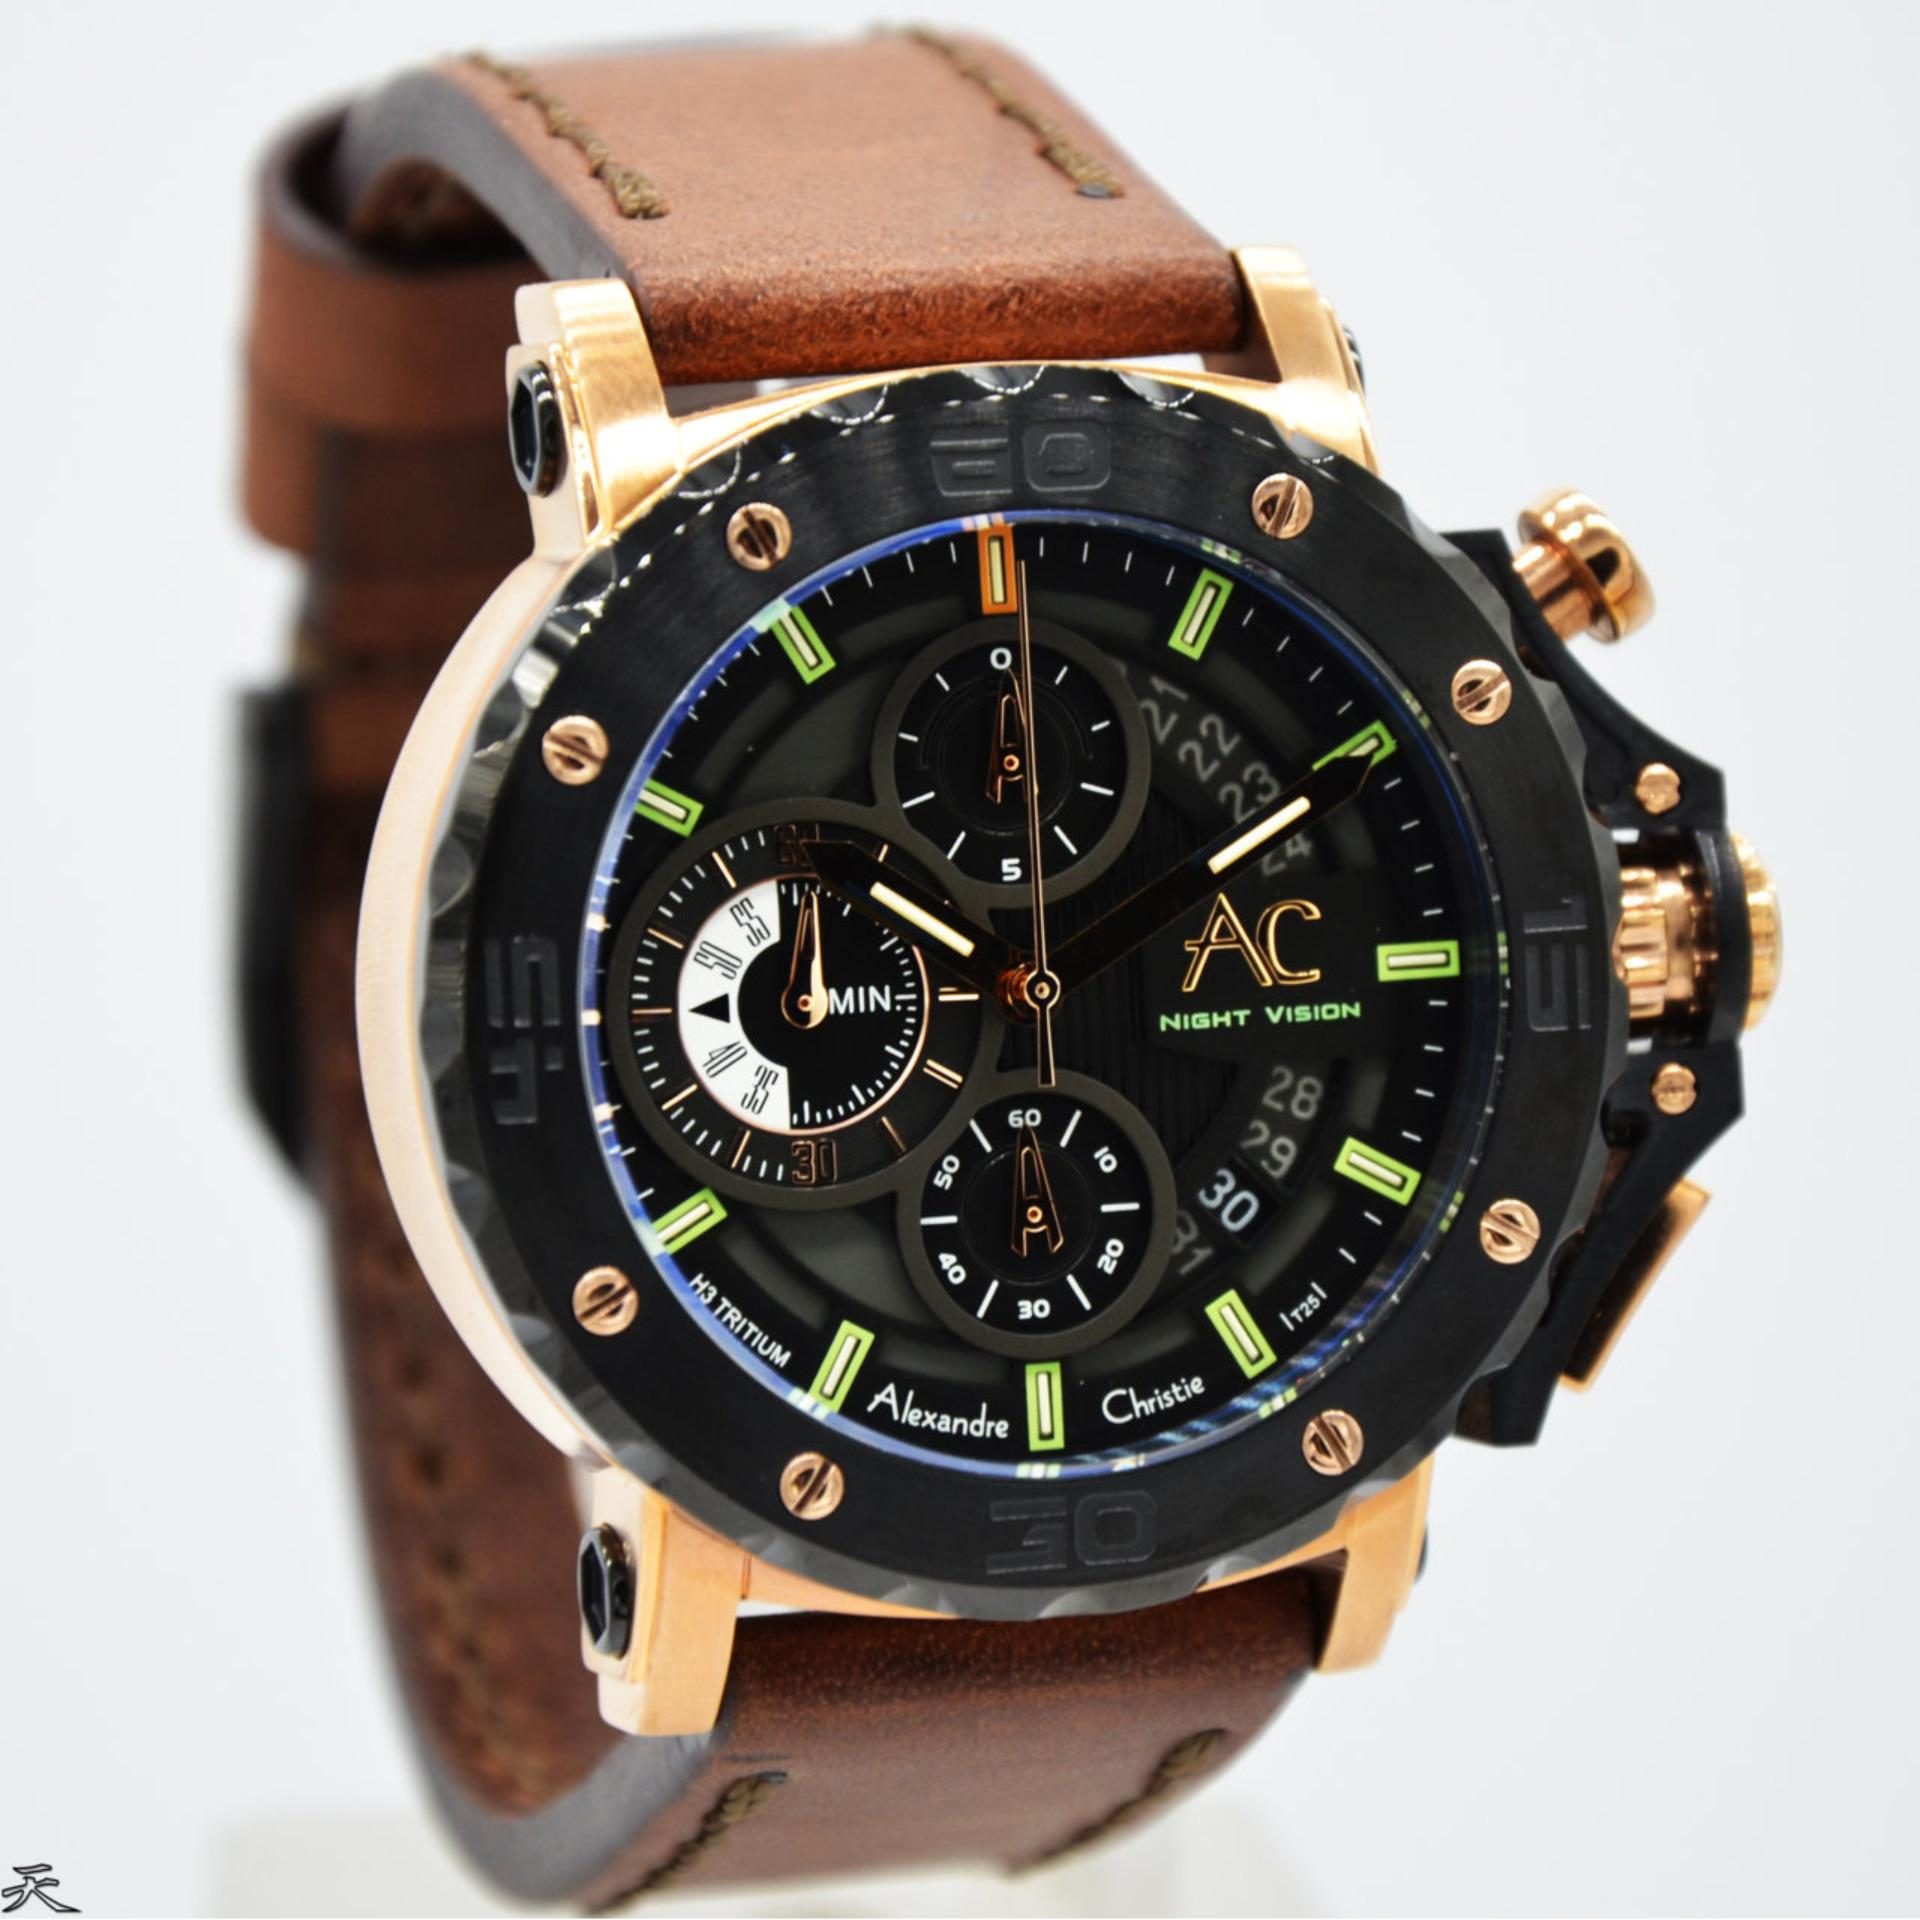 Alexandre Christie night vision glow in the dark Original chronograph AC9201M Jam Tangan Pria